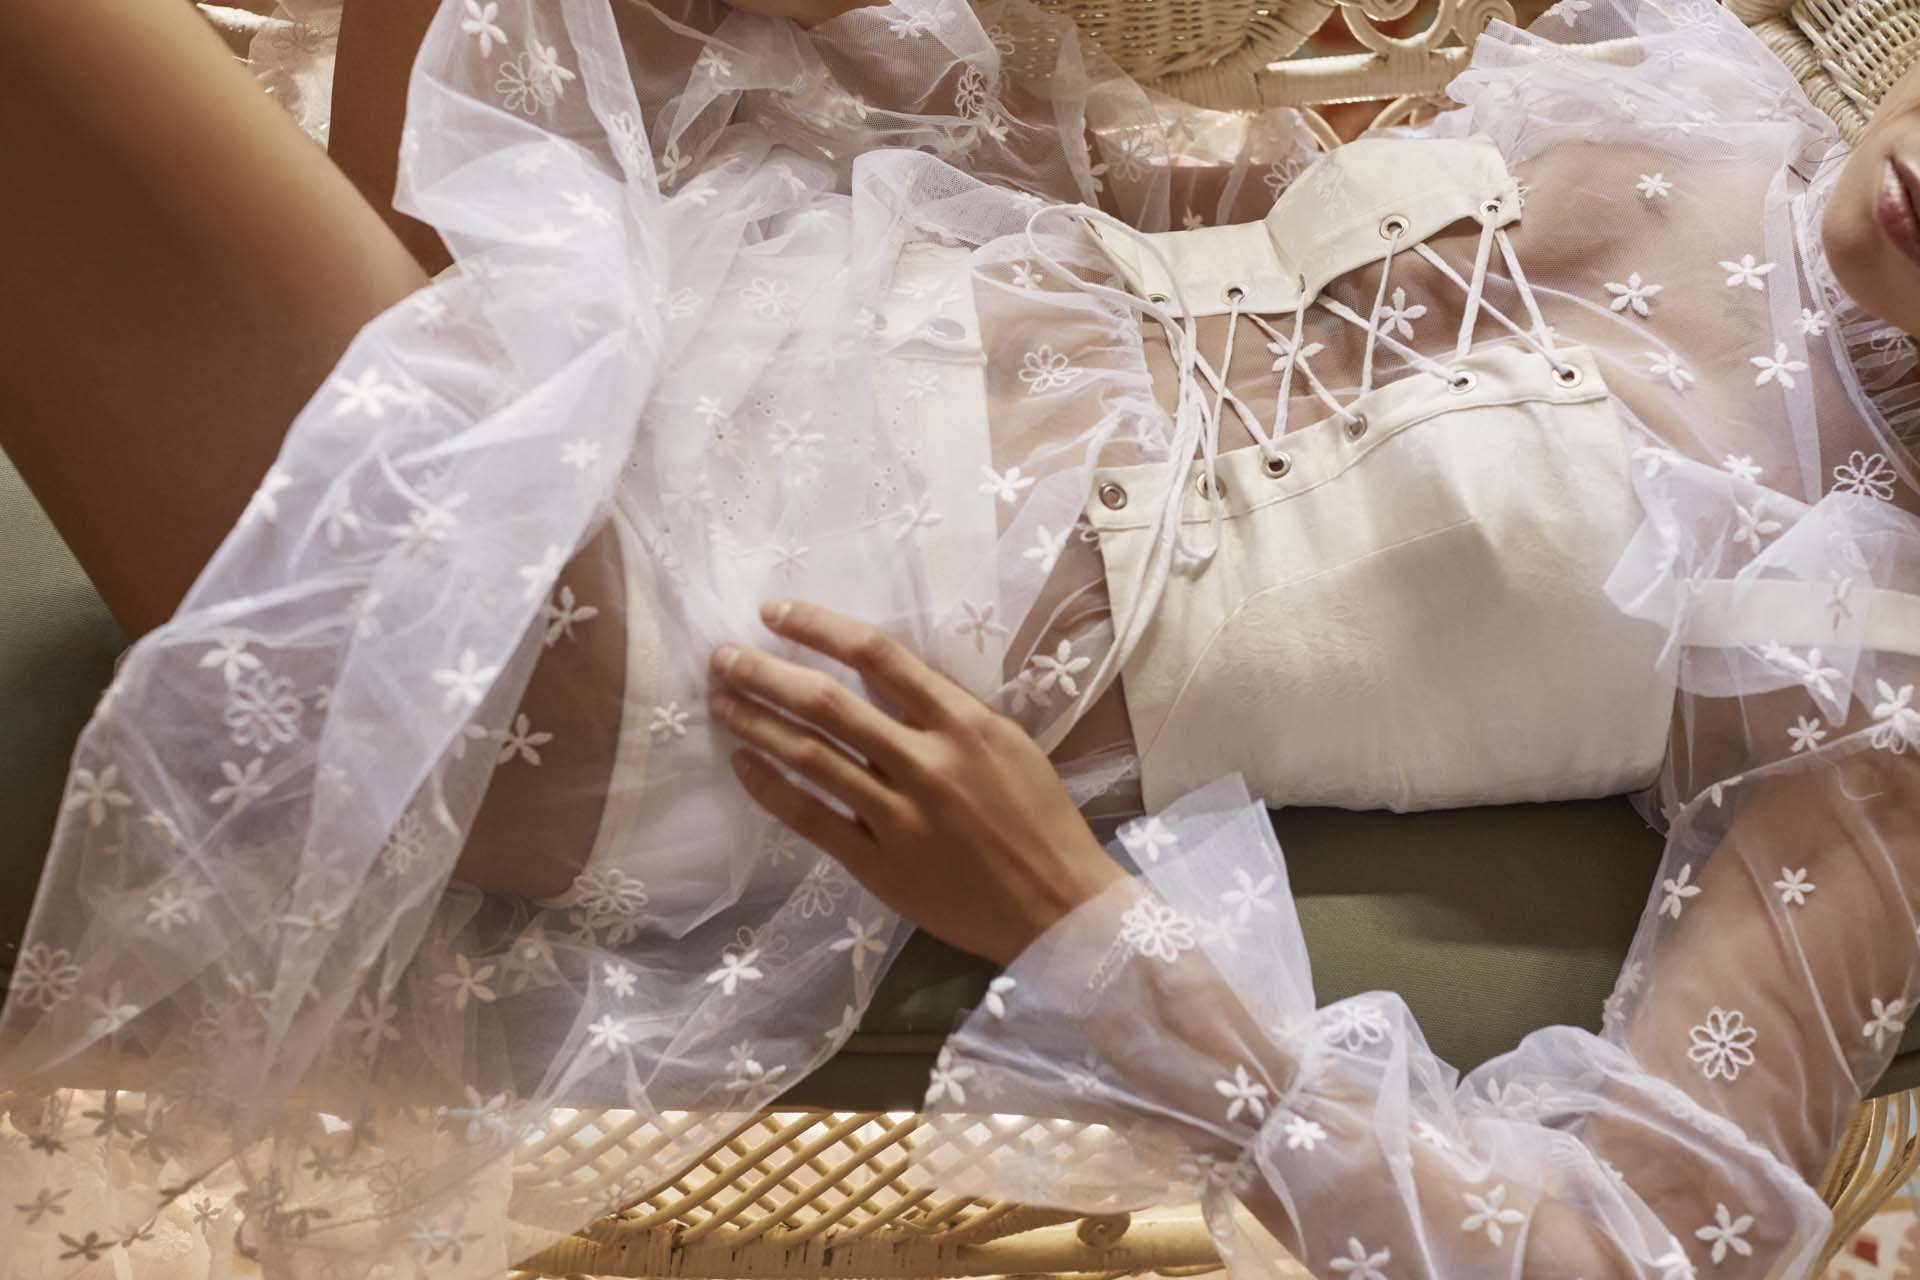 Get to know the affordable LA-based label brides are choosing to wear down the aisle